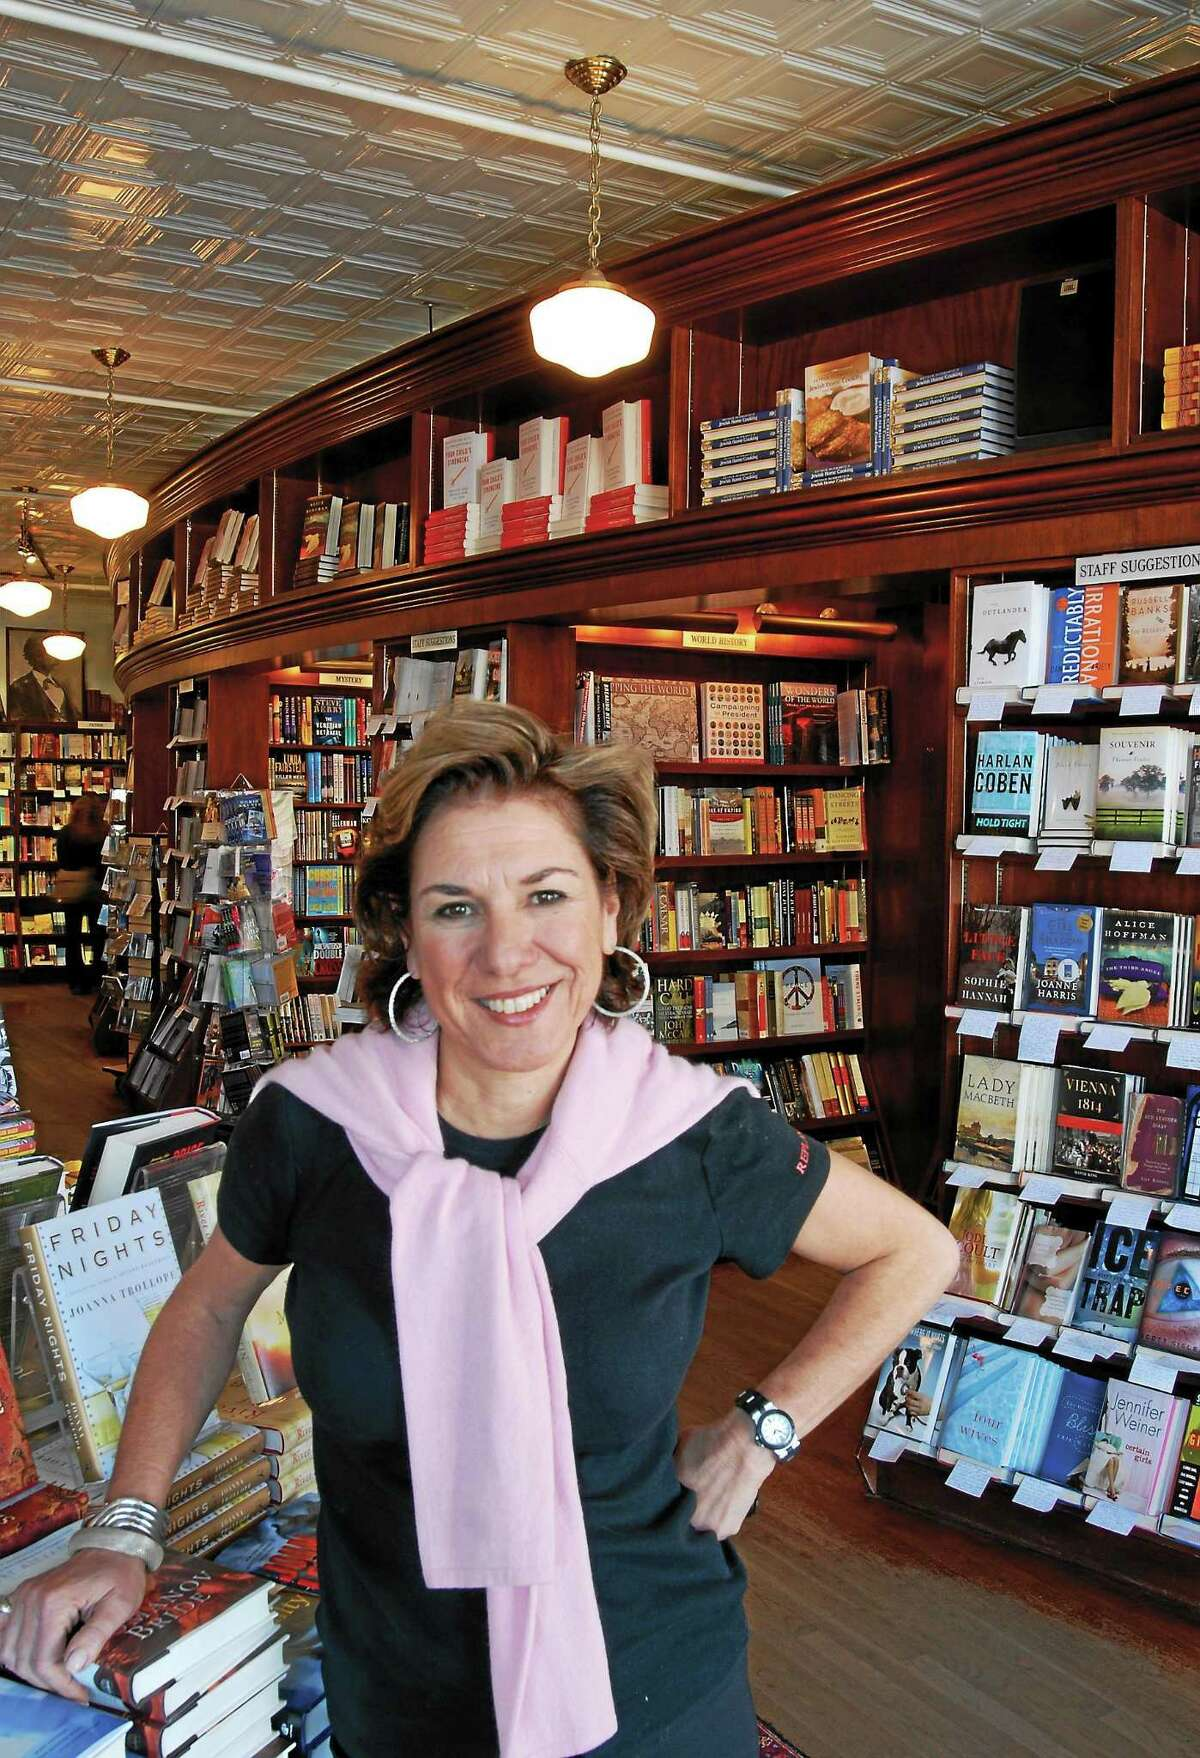 Roxanne Coady, owner of R.J. Julia Booksellers in Madison